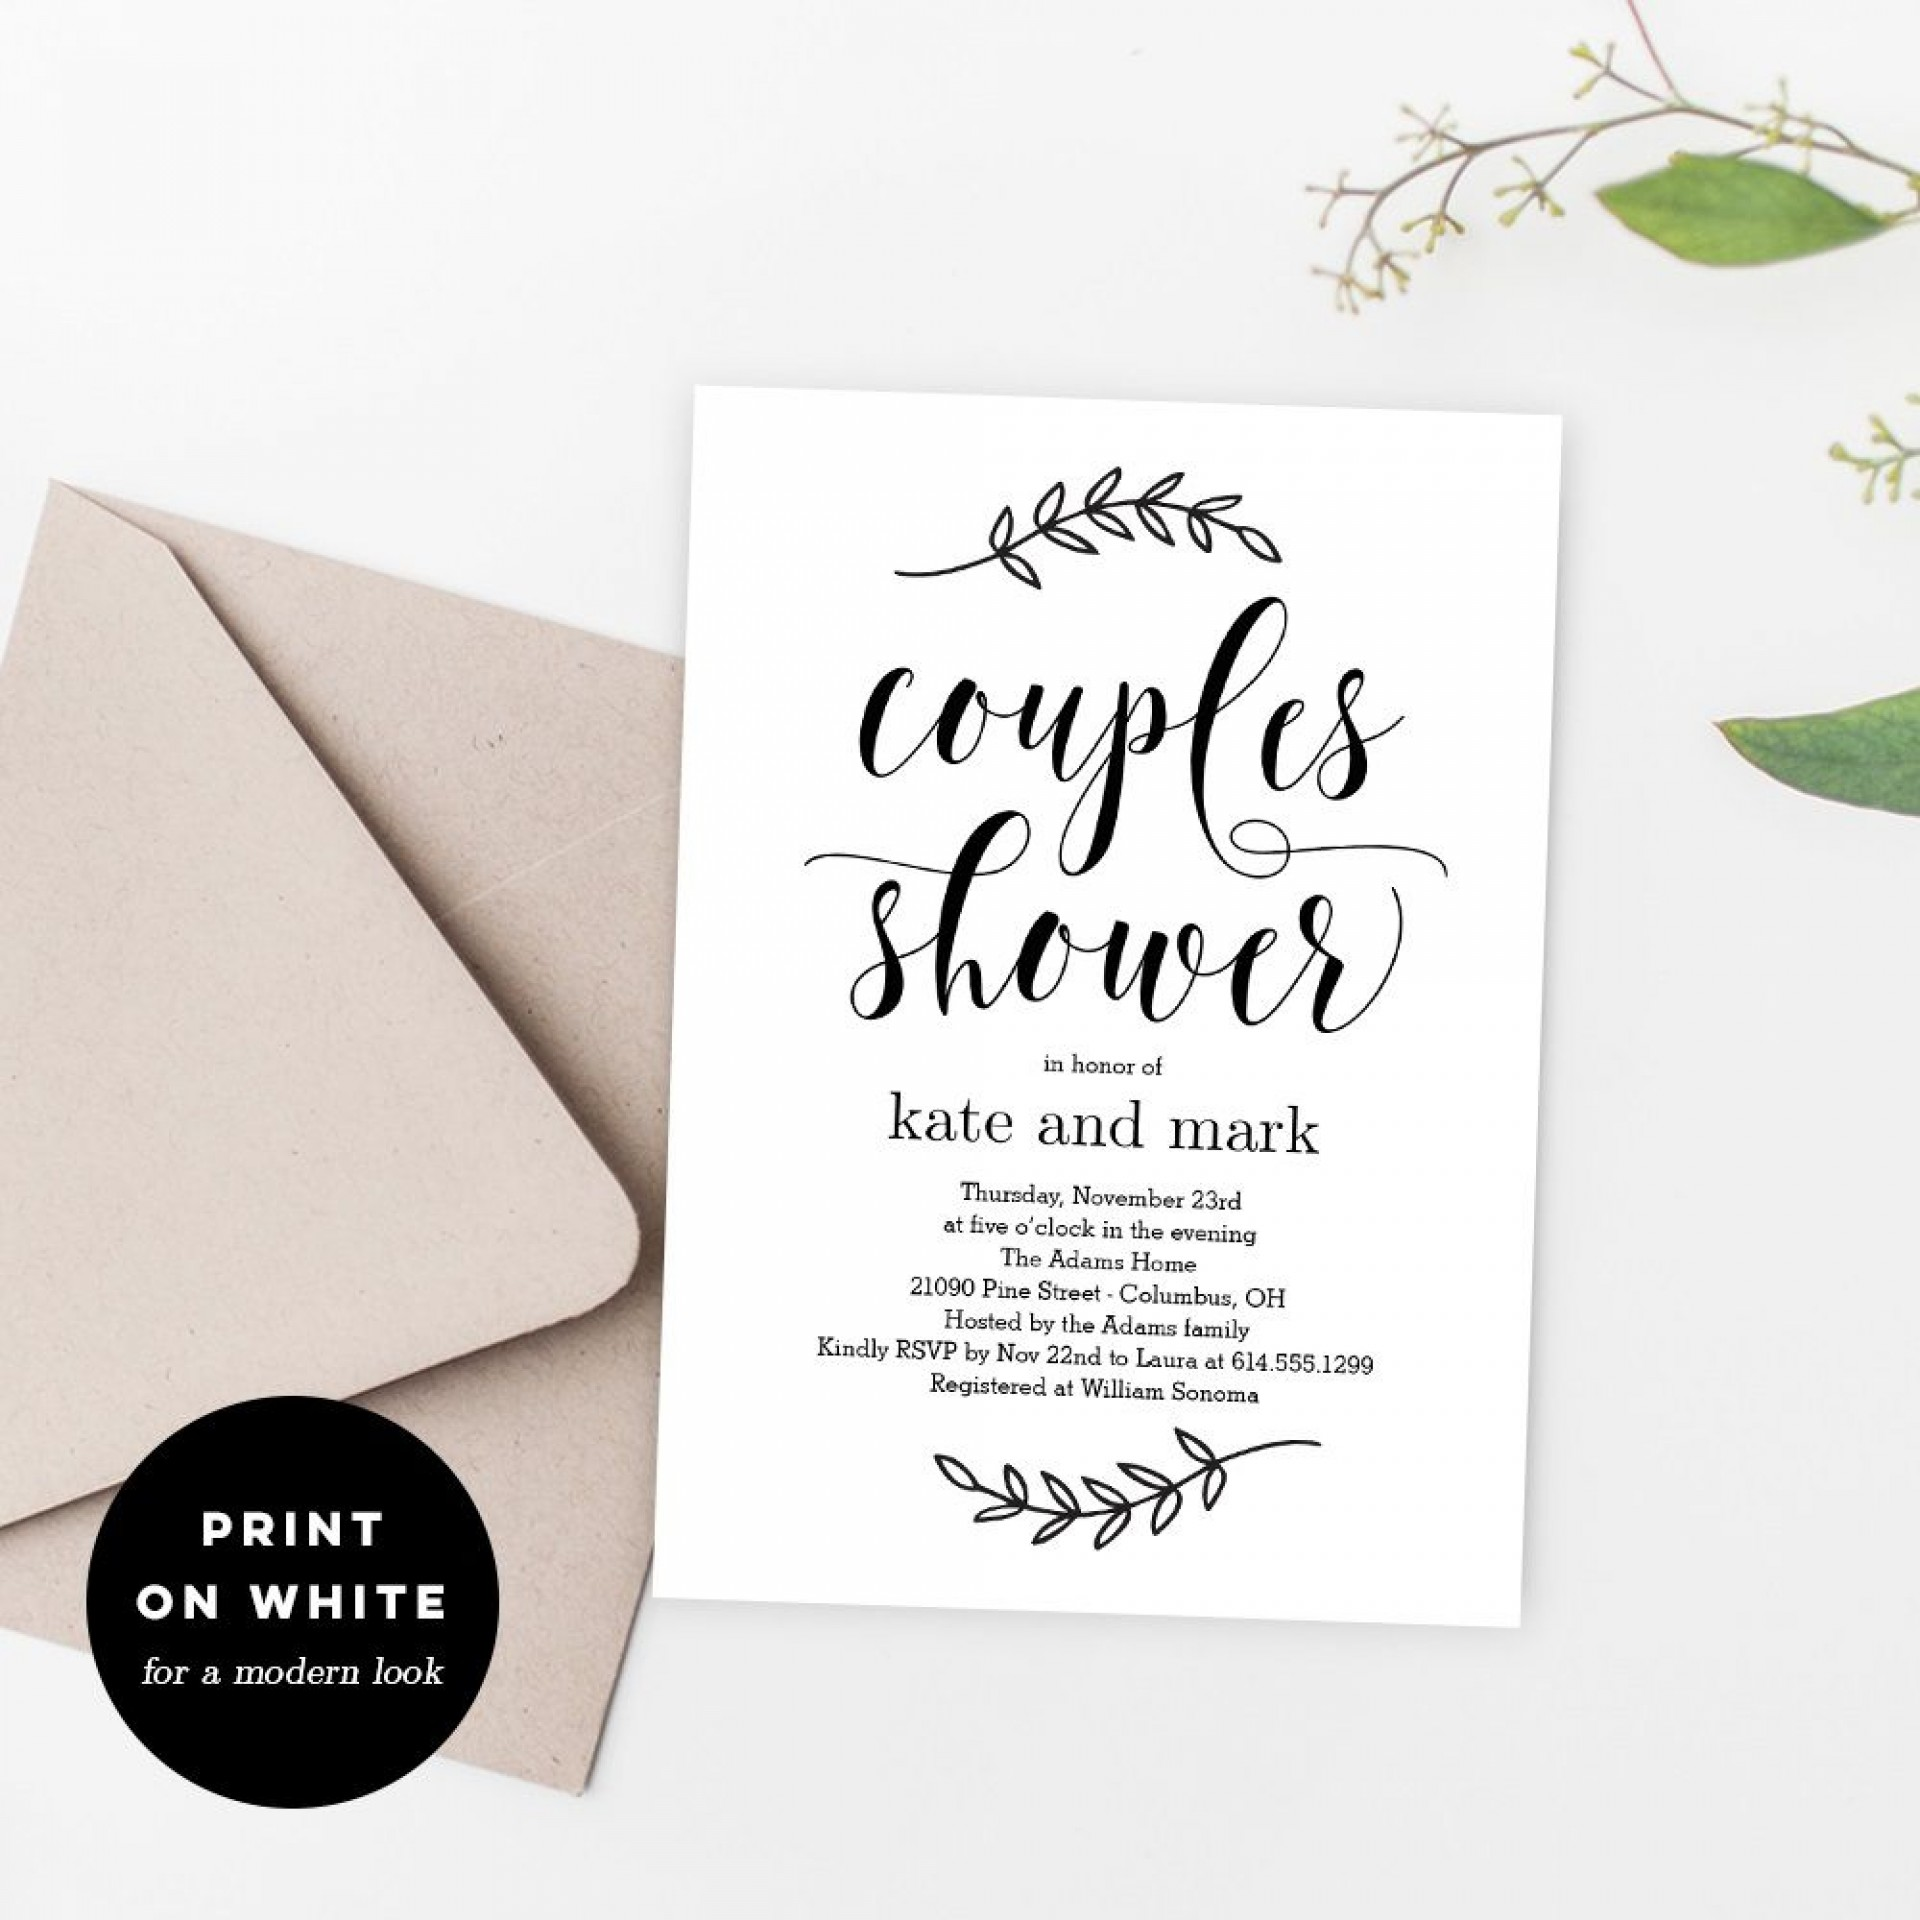 010 Sensational Free Couple Shower Invitation Template Download Sample 1920